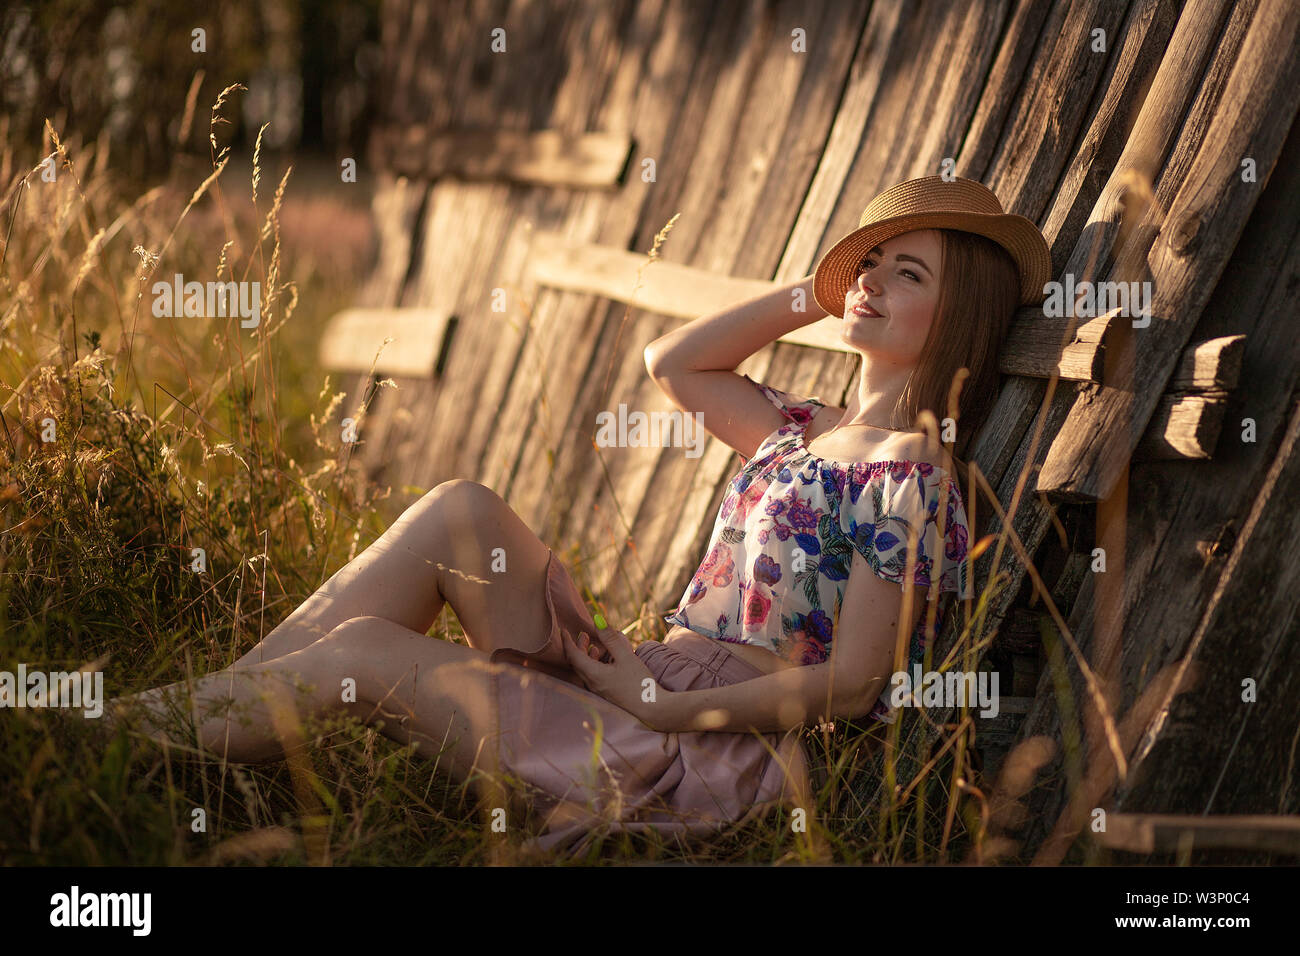 beautiful slender girl with long hair in a straw hat sitting near a wooden fence and dreaming. Summer evening at sunset. Love concept happiness, youth - Stock Image